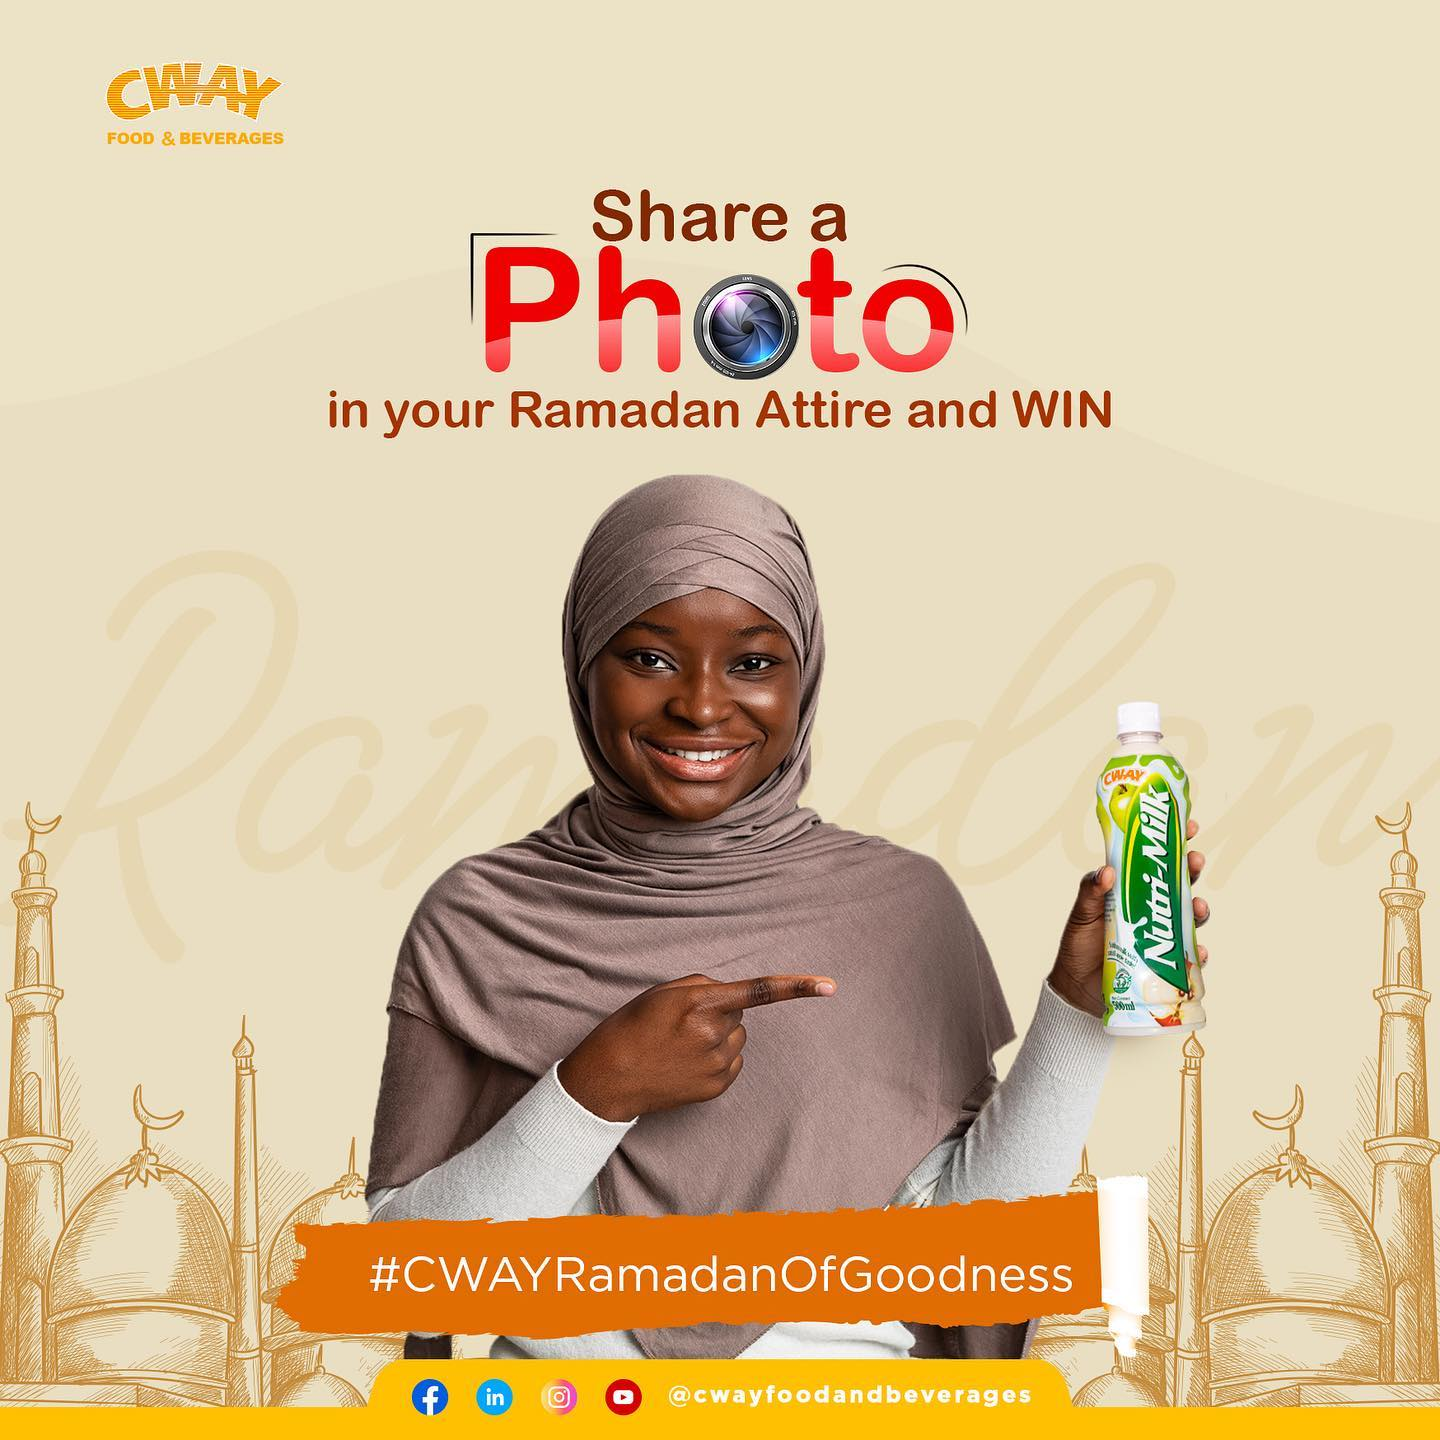 Share a Photo in Your Ramadan Attire and Win Prizes in #CwayRamadanOfGoodness Challenge.